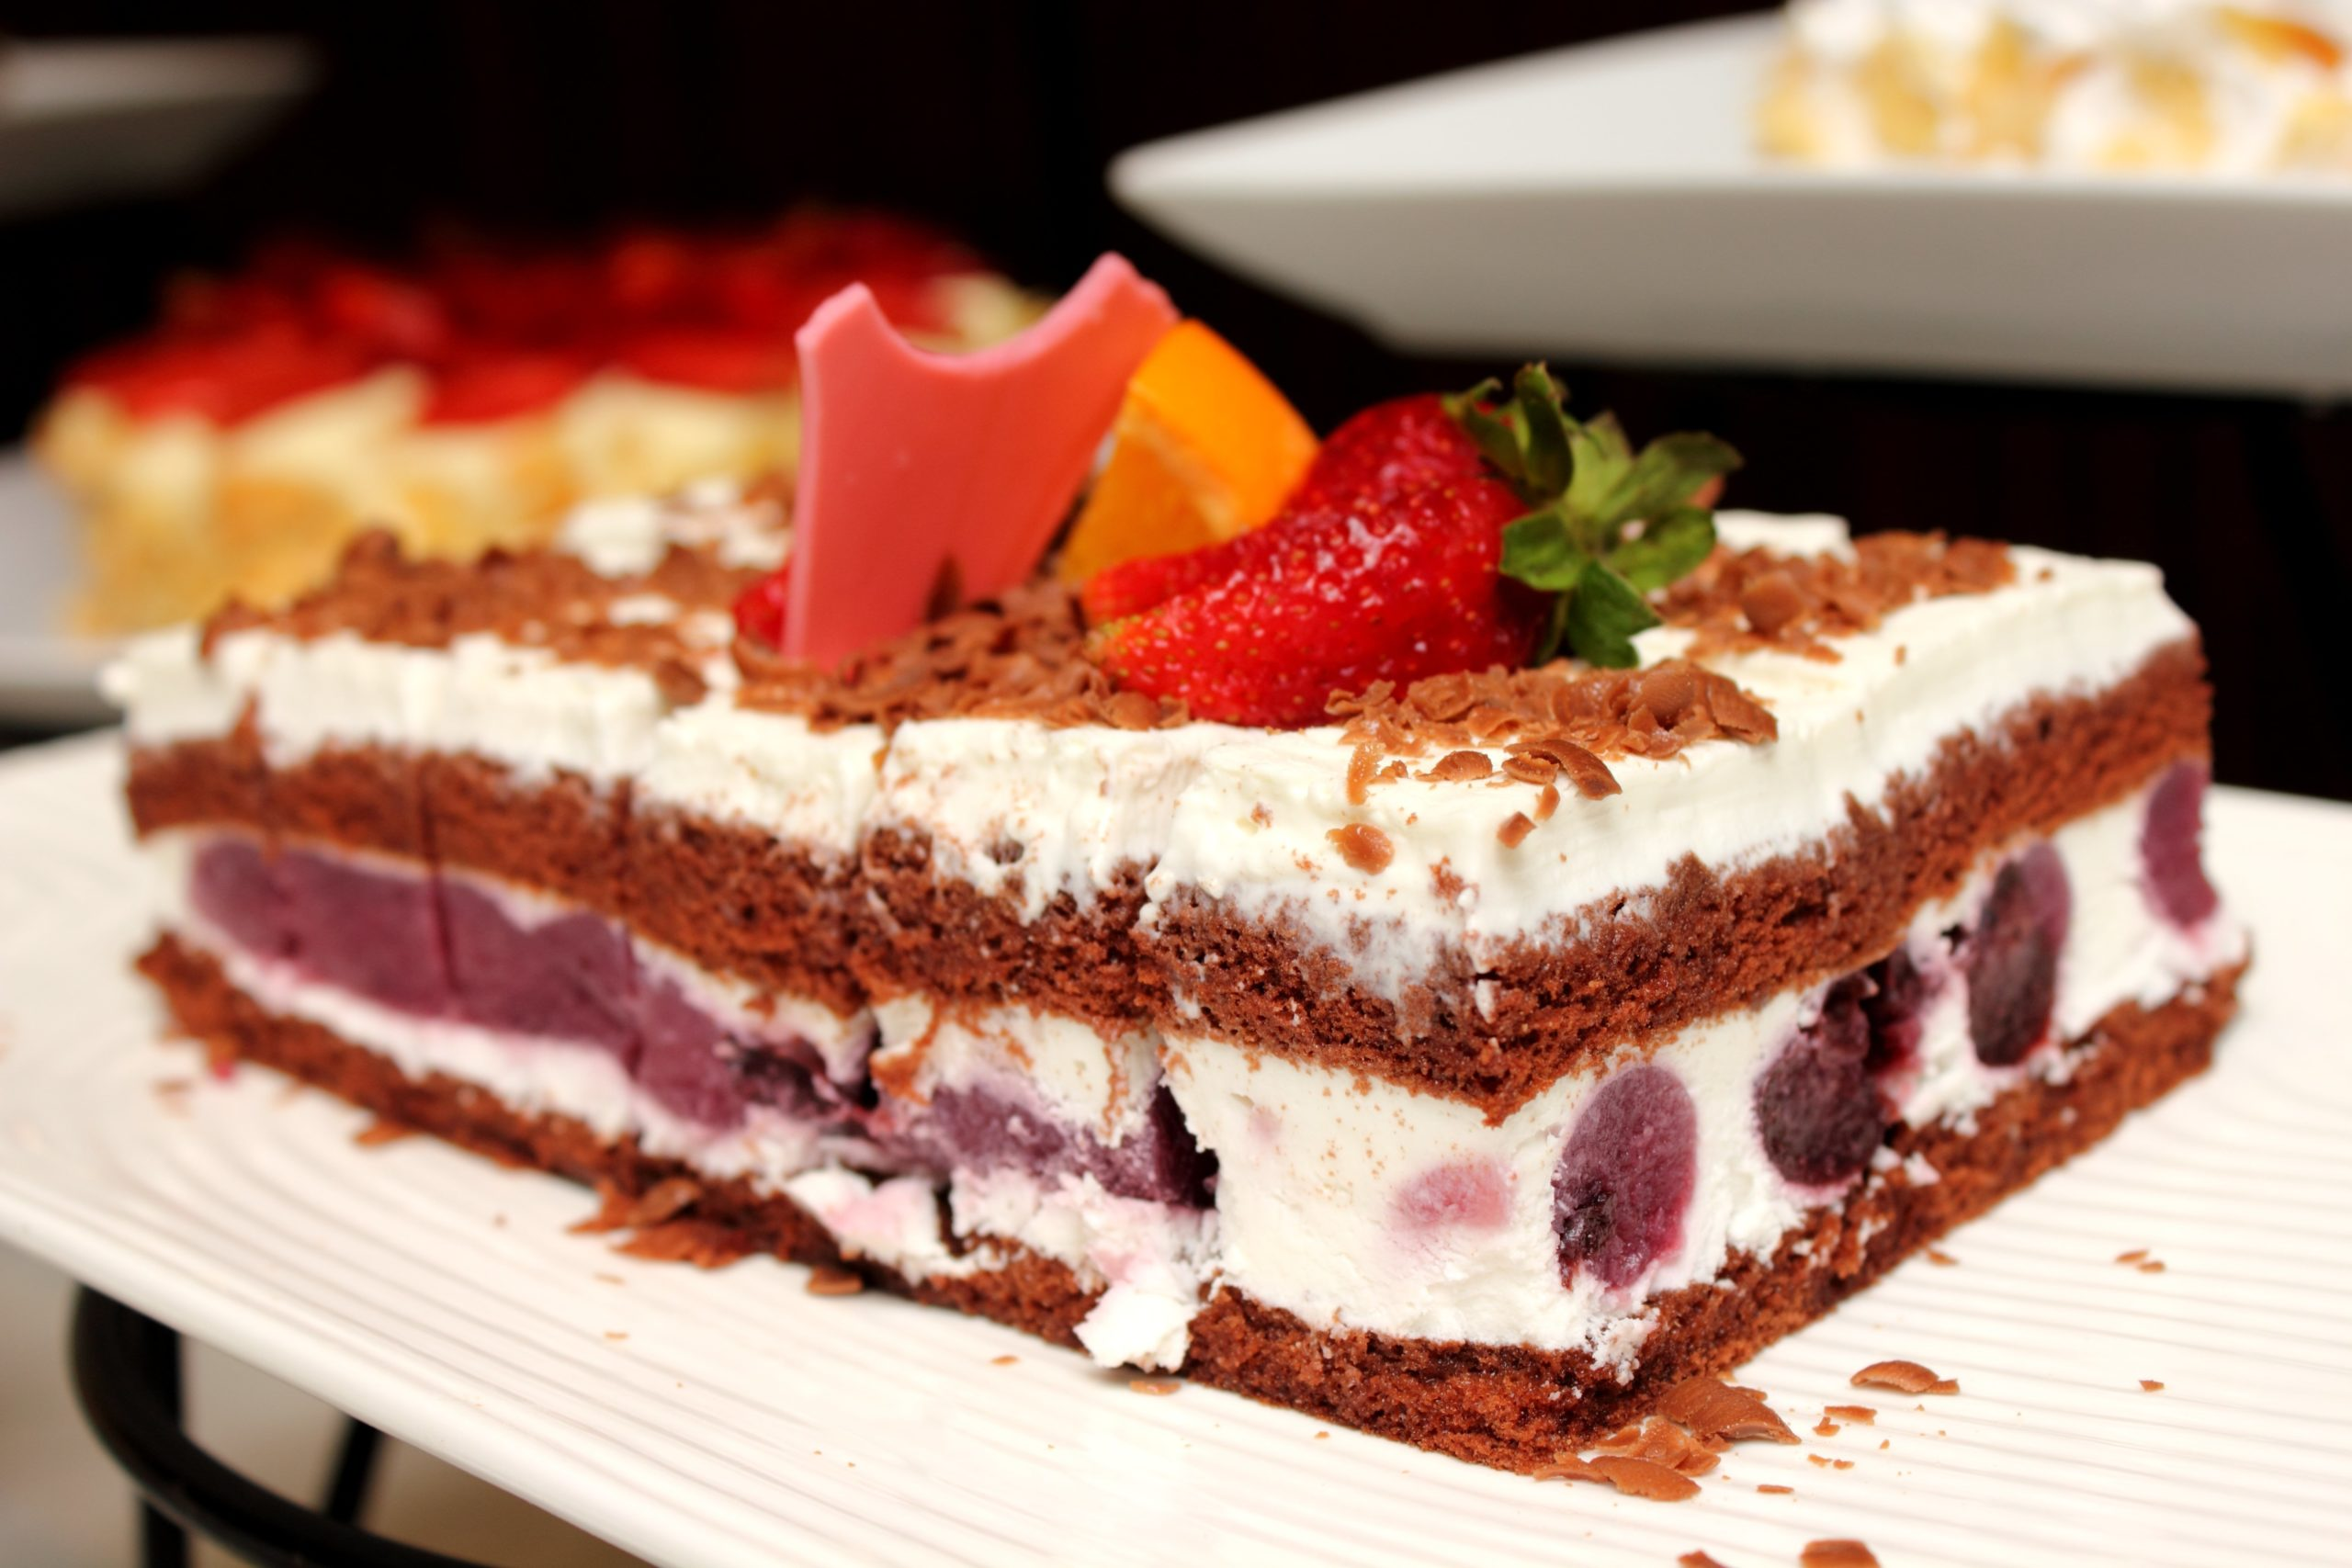 Blackforest, chocolate cake with cherries in it.